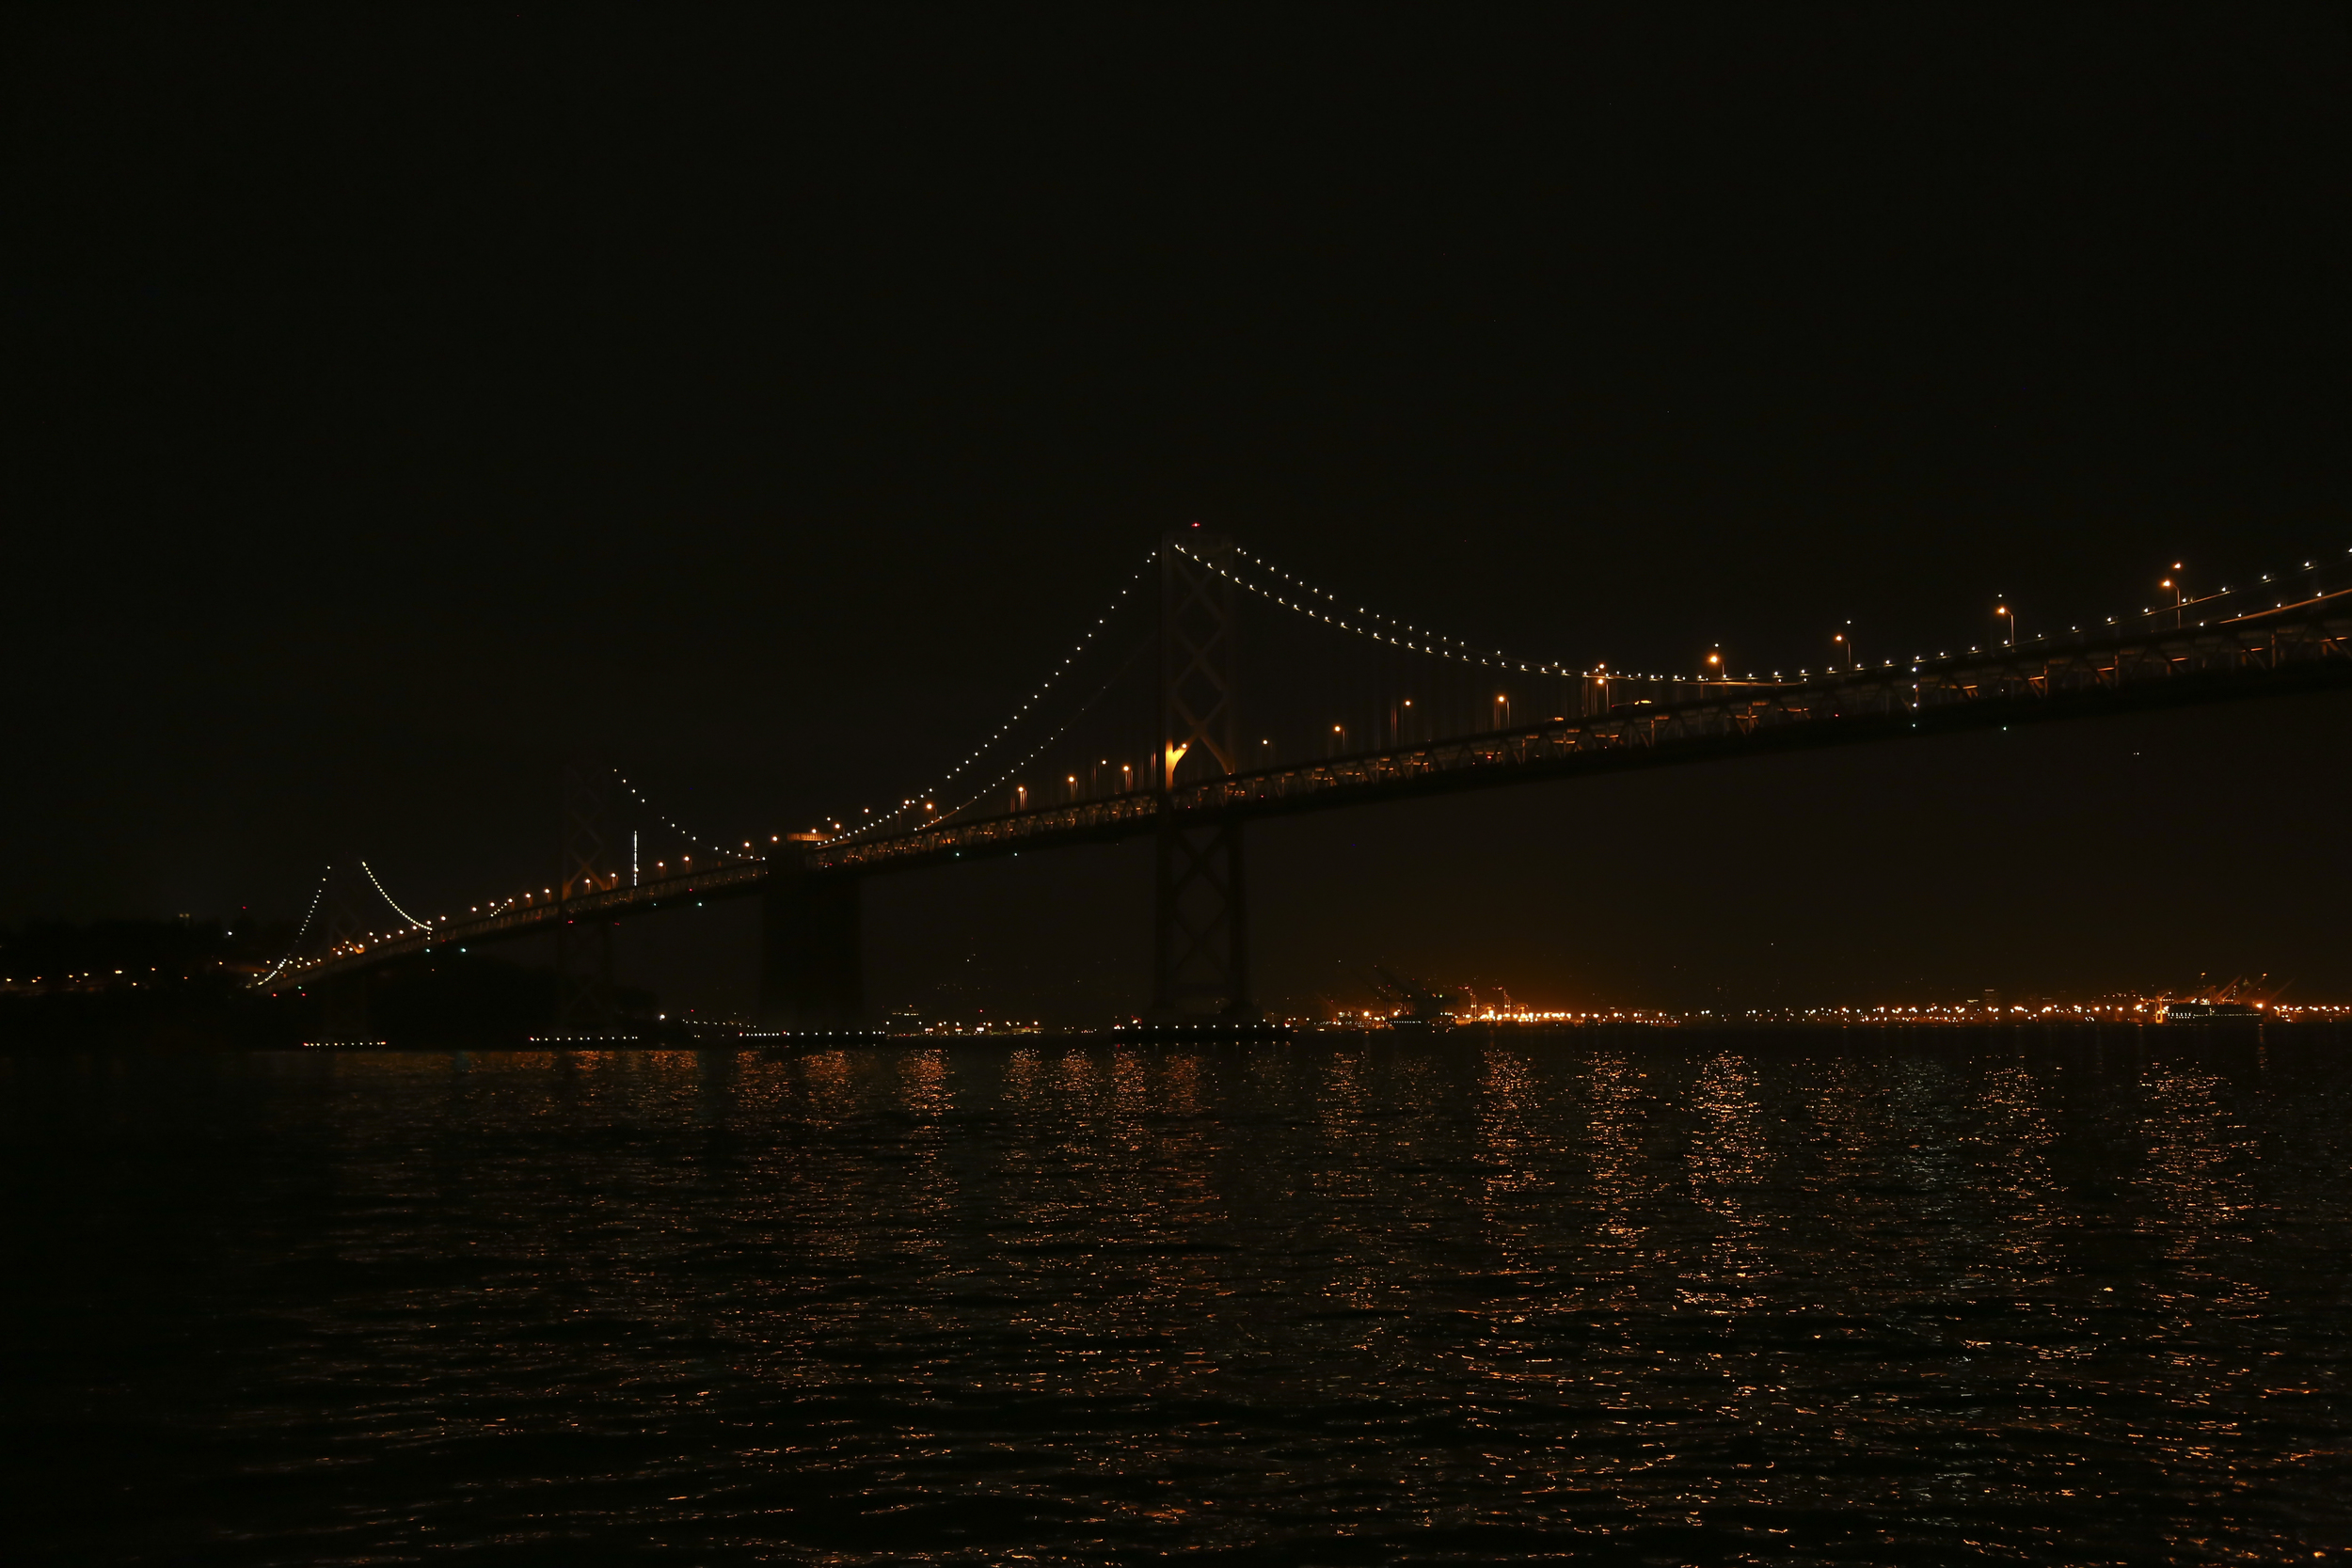 Michelle Larson    - A December night in San Francisco… all is festive, sparkly and bright. The lights from the Bay Bridge reflect and dance on the water below… feeling romantic as we walk hand-in-hand to enjoy dinner with a view.